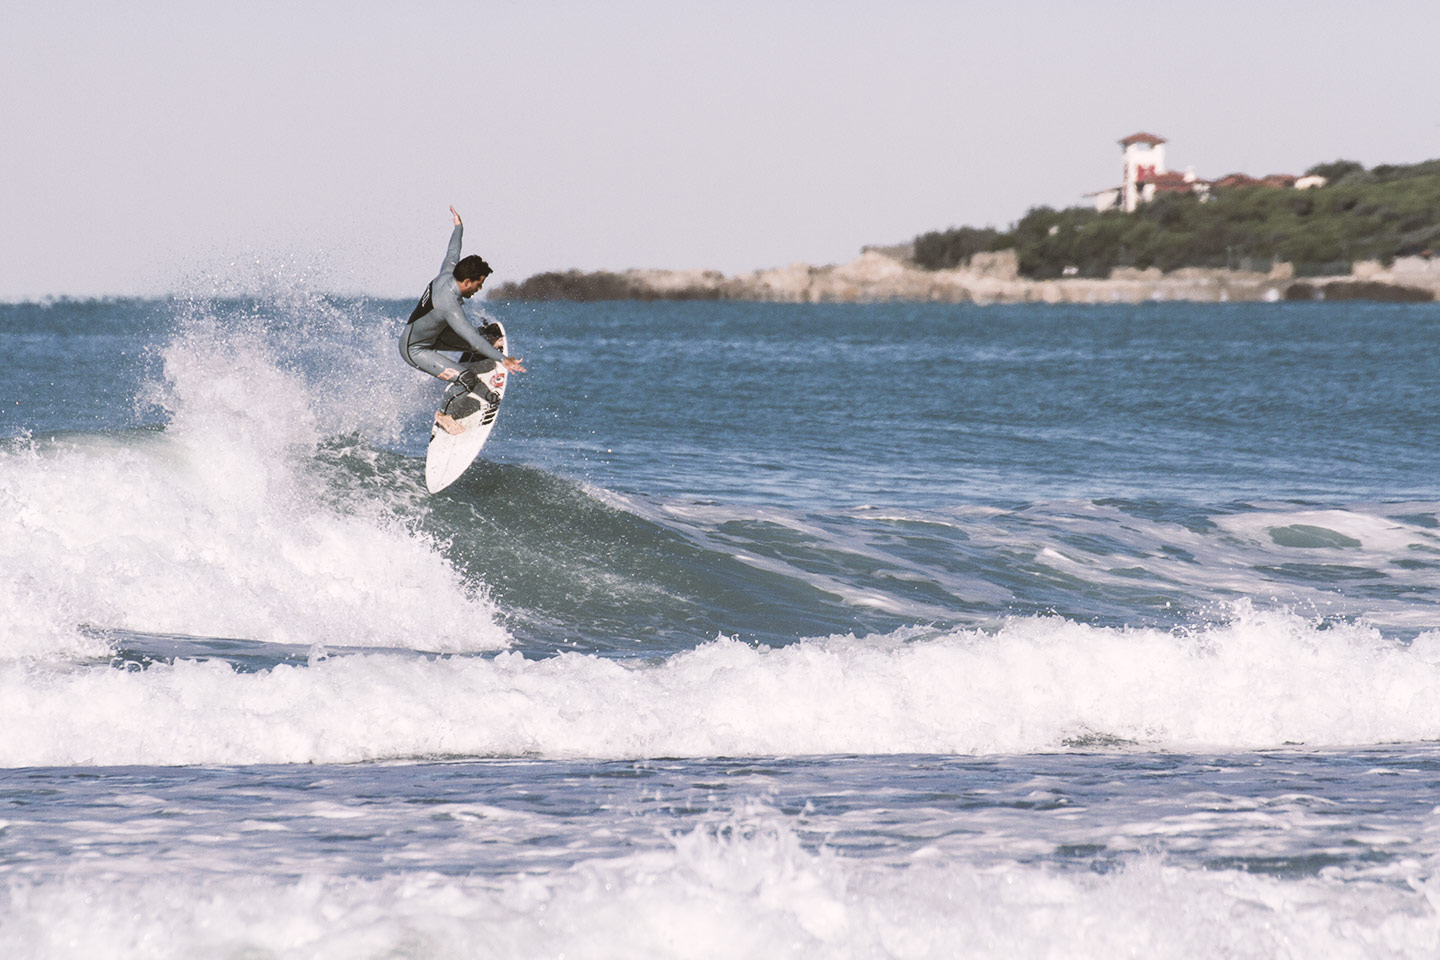 livorno_surf_gianmarco_pollacchi_surf_culture